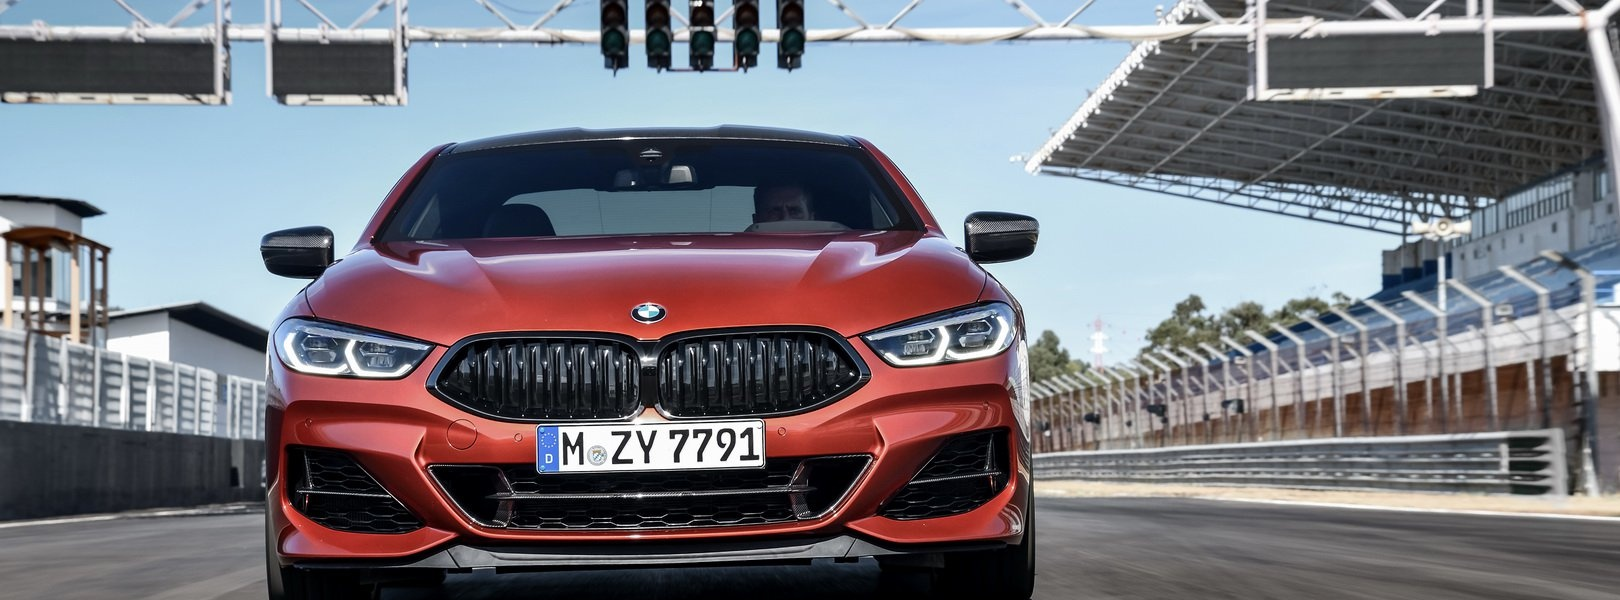 4e759d1a-2019-bmw-8-series-coupe-41.jpg